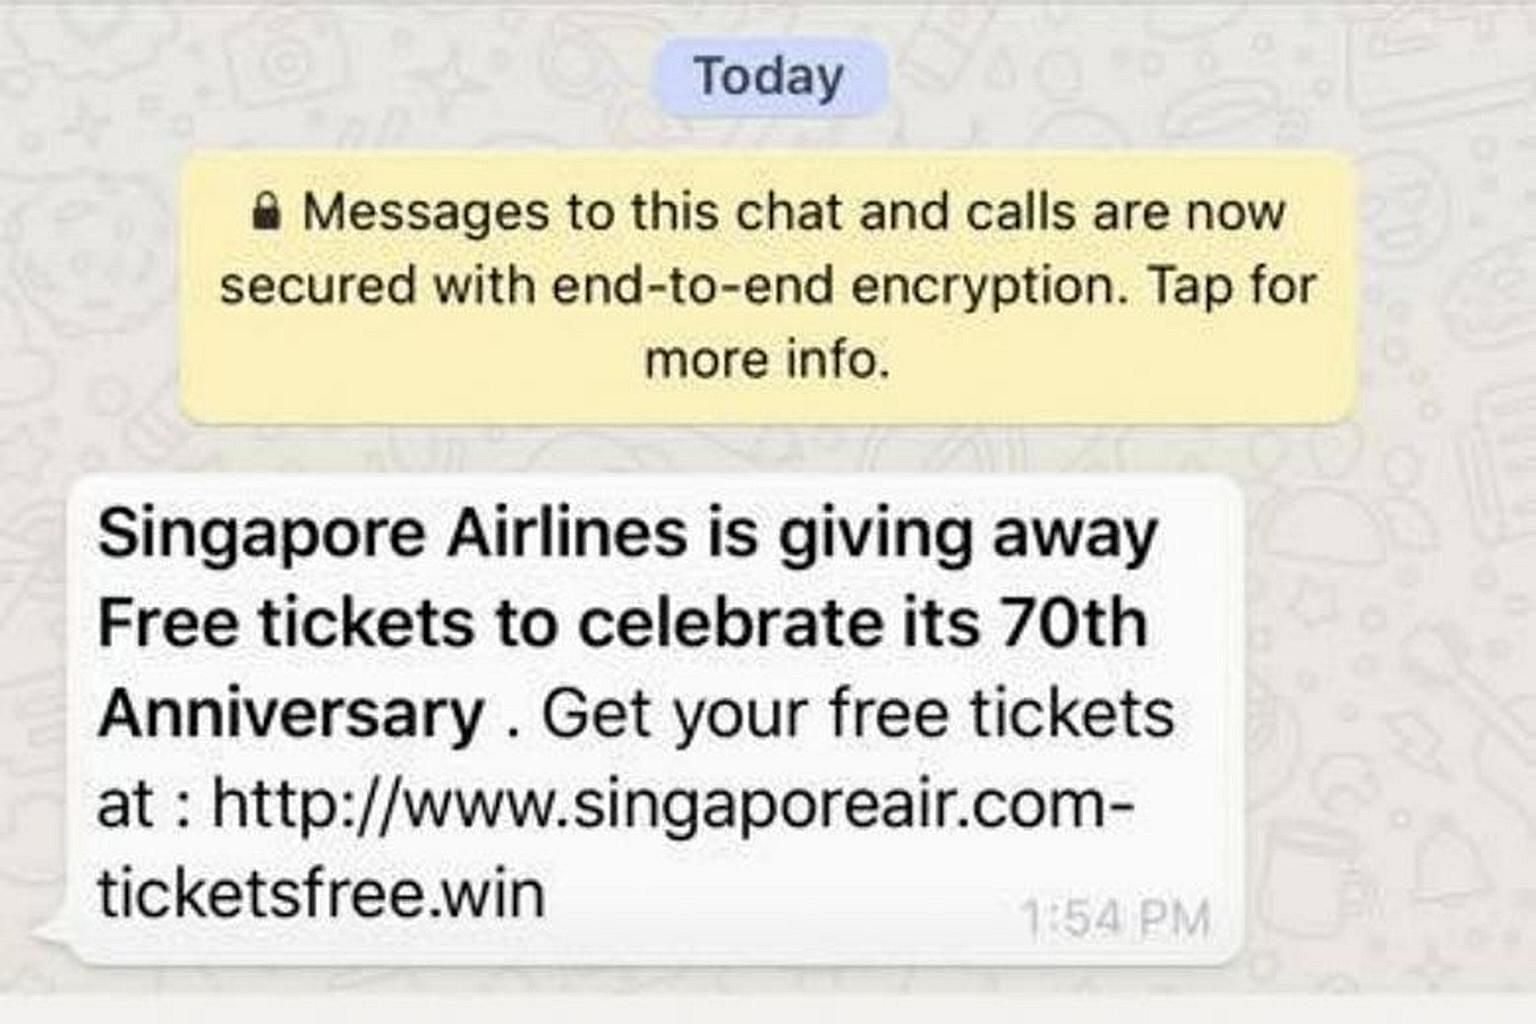 Singapore Airlines said it is currently working with its security vendor to have the phishing site, which was offering free tickets while asking for personal data, taken down.